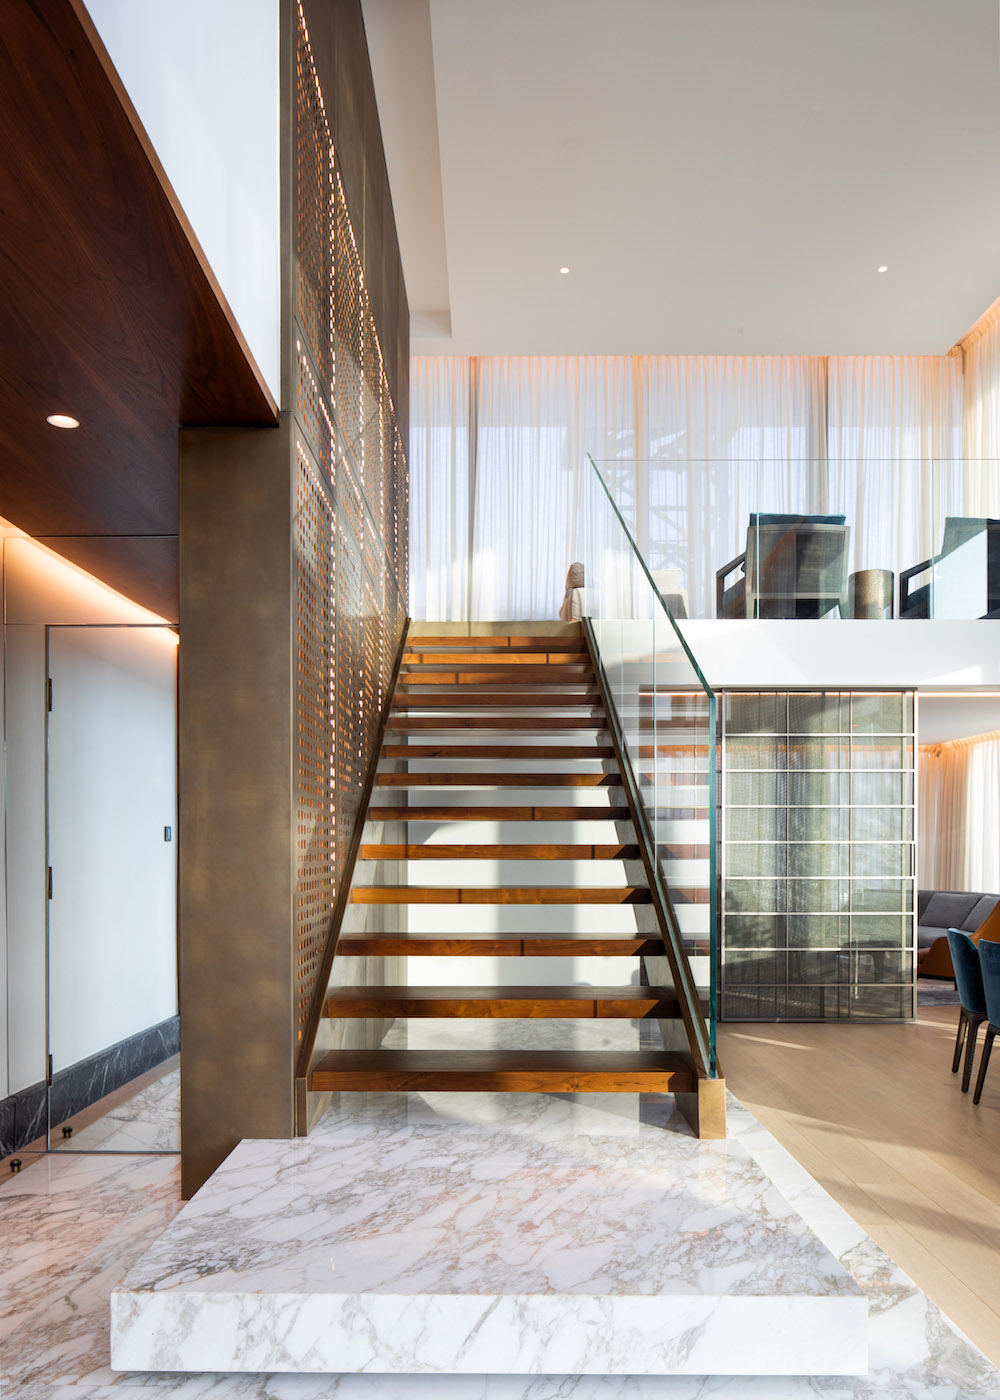 A stairway up to more living area in suite